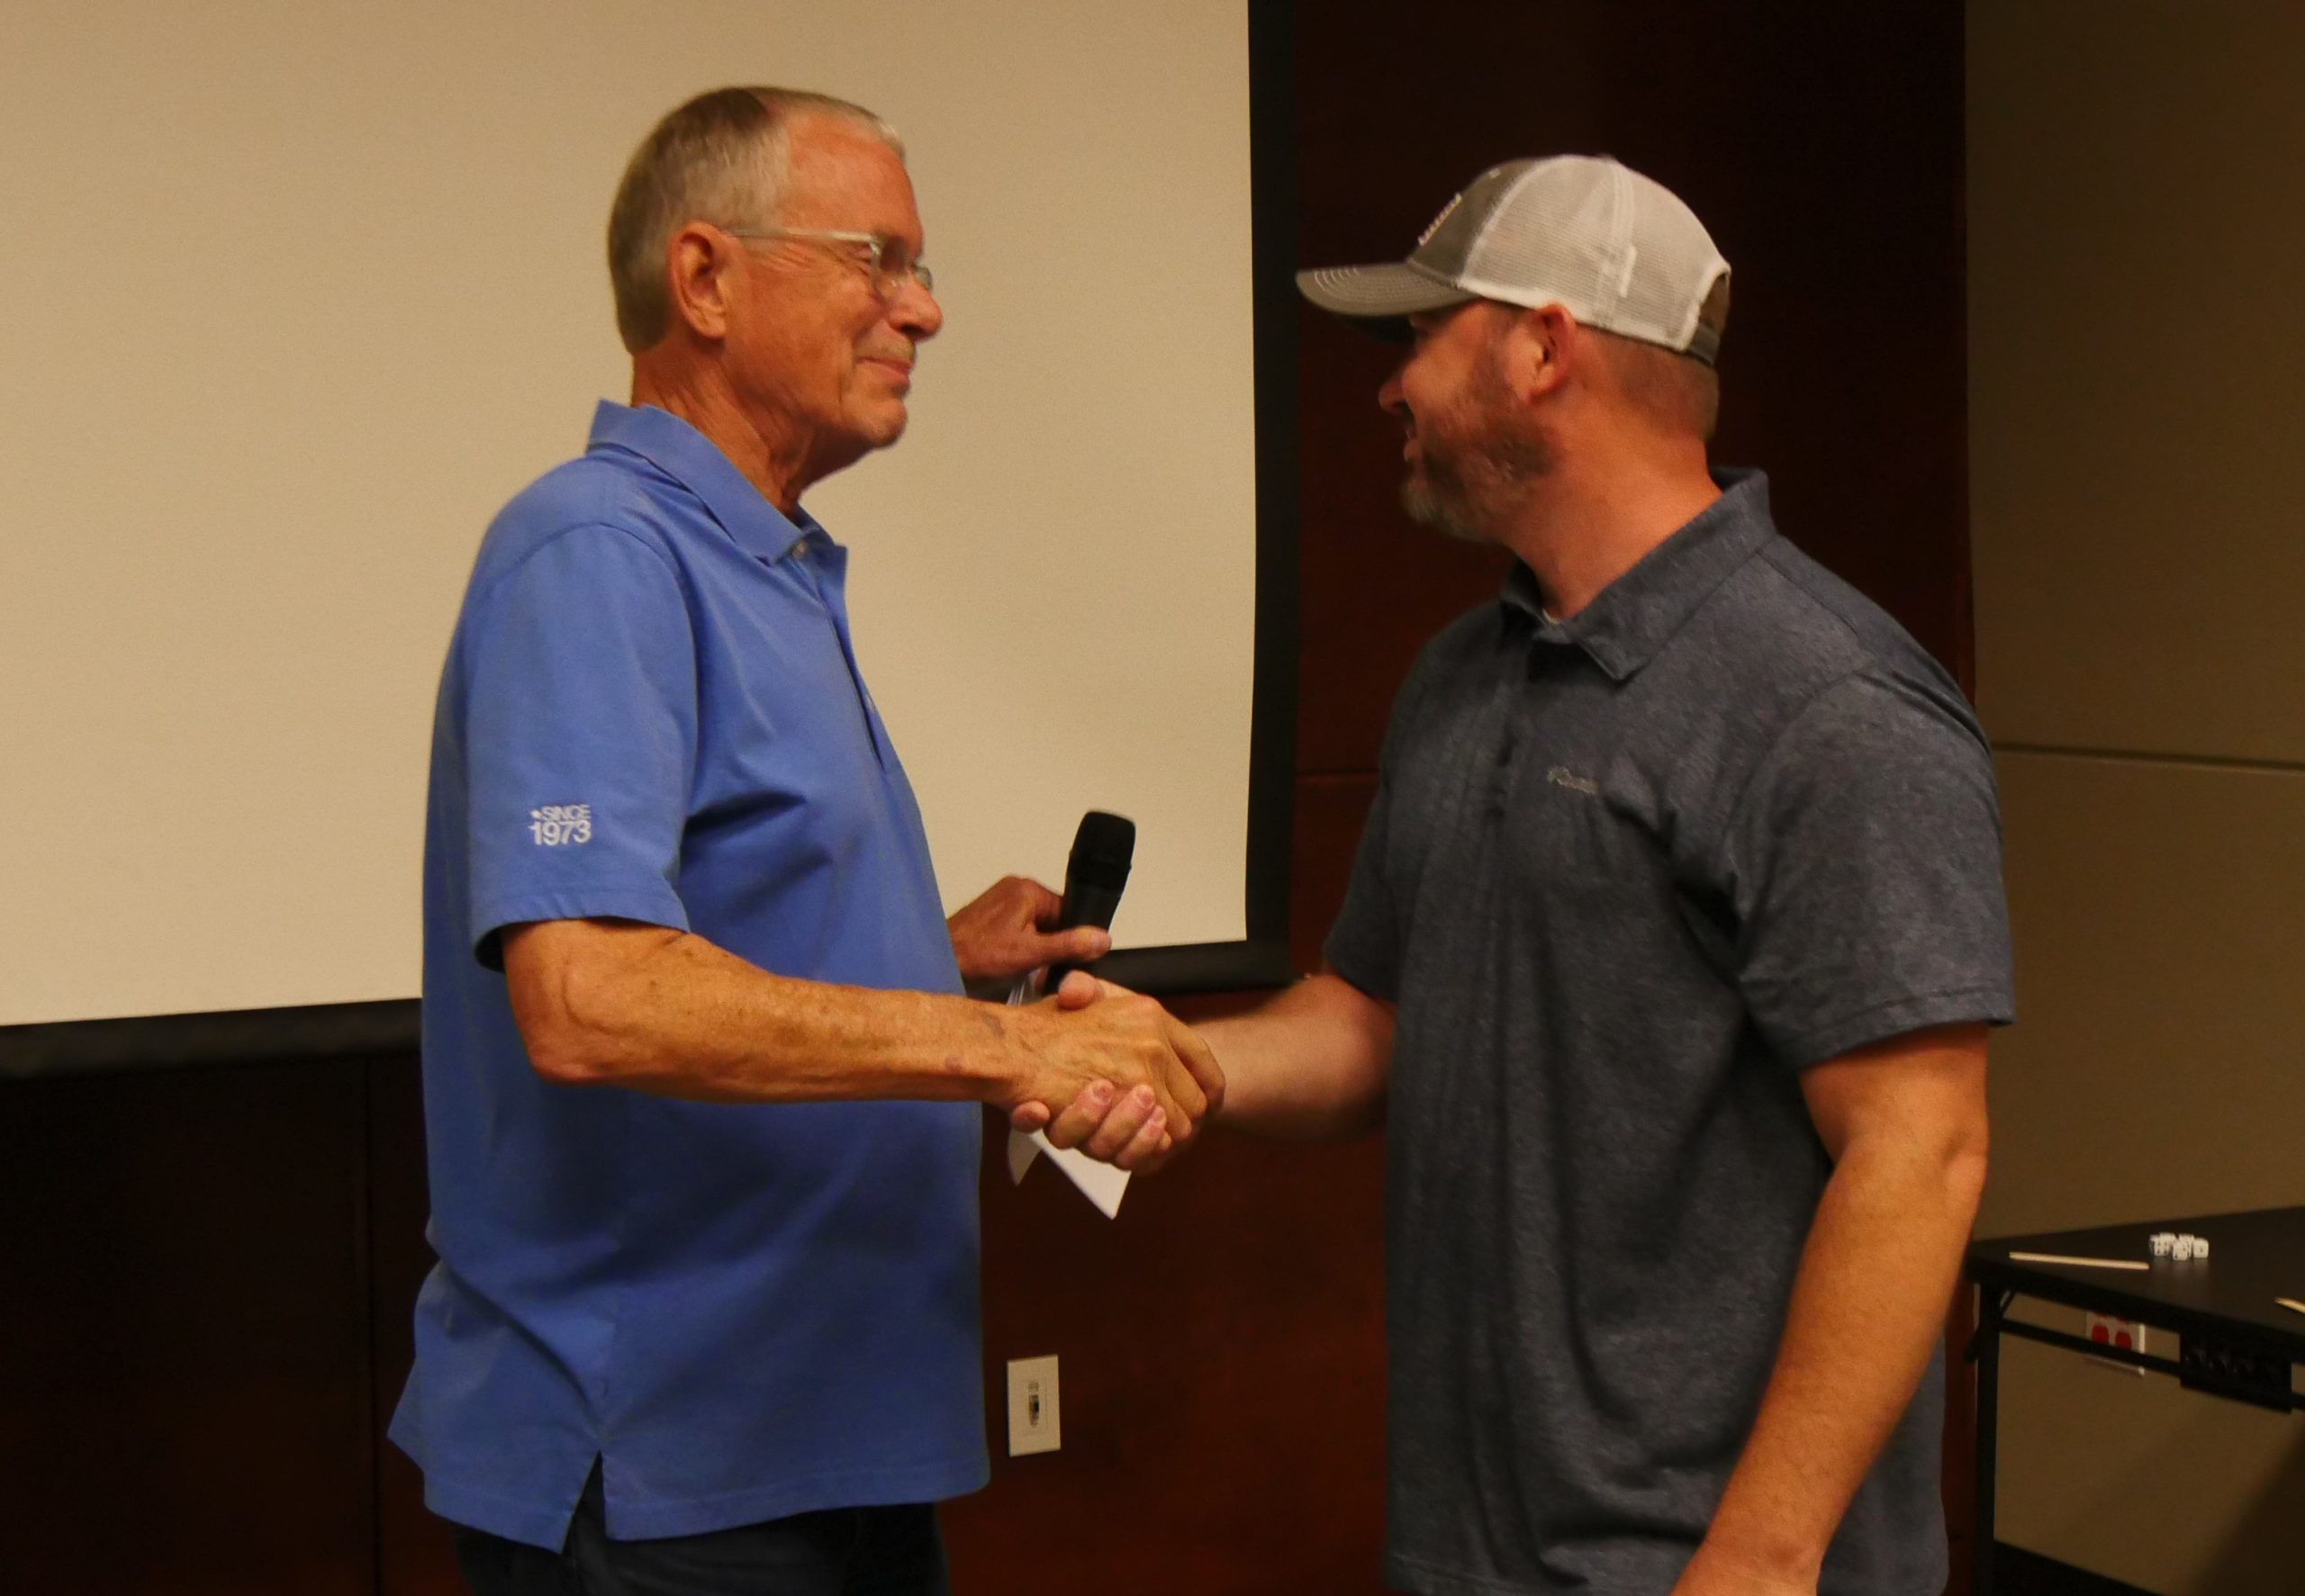 Steve Irby, founder of Stillwater Designs, congratulates Trevis Rakey for his 25-year anniversary with the company.